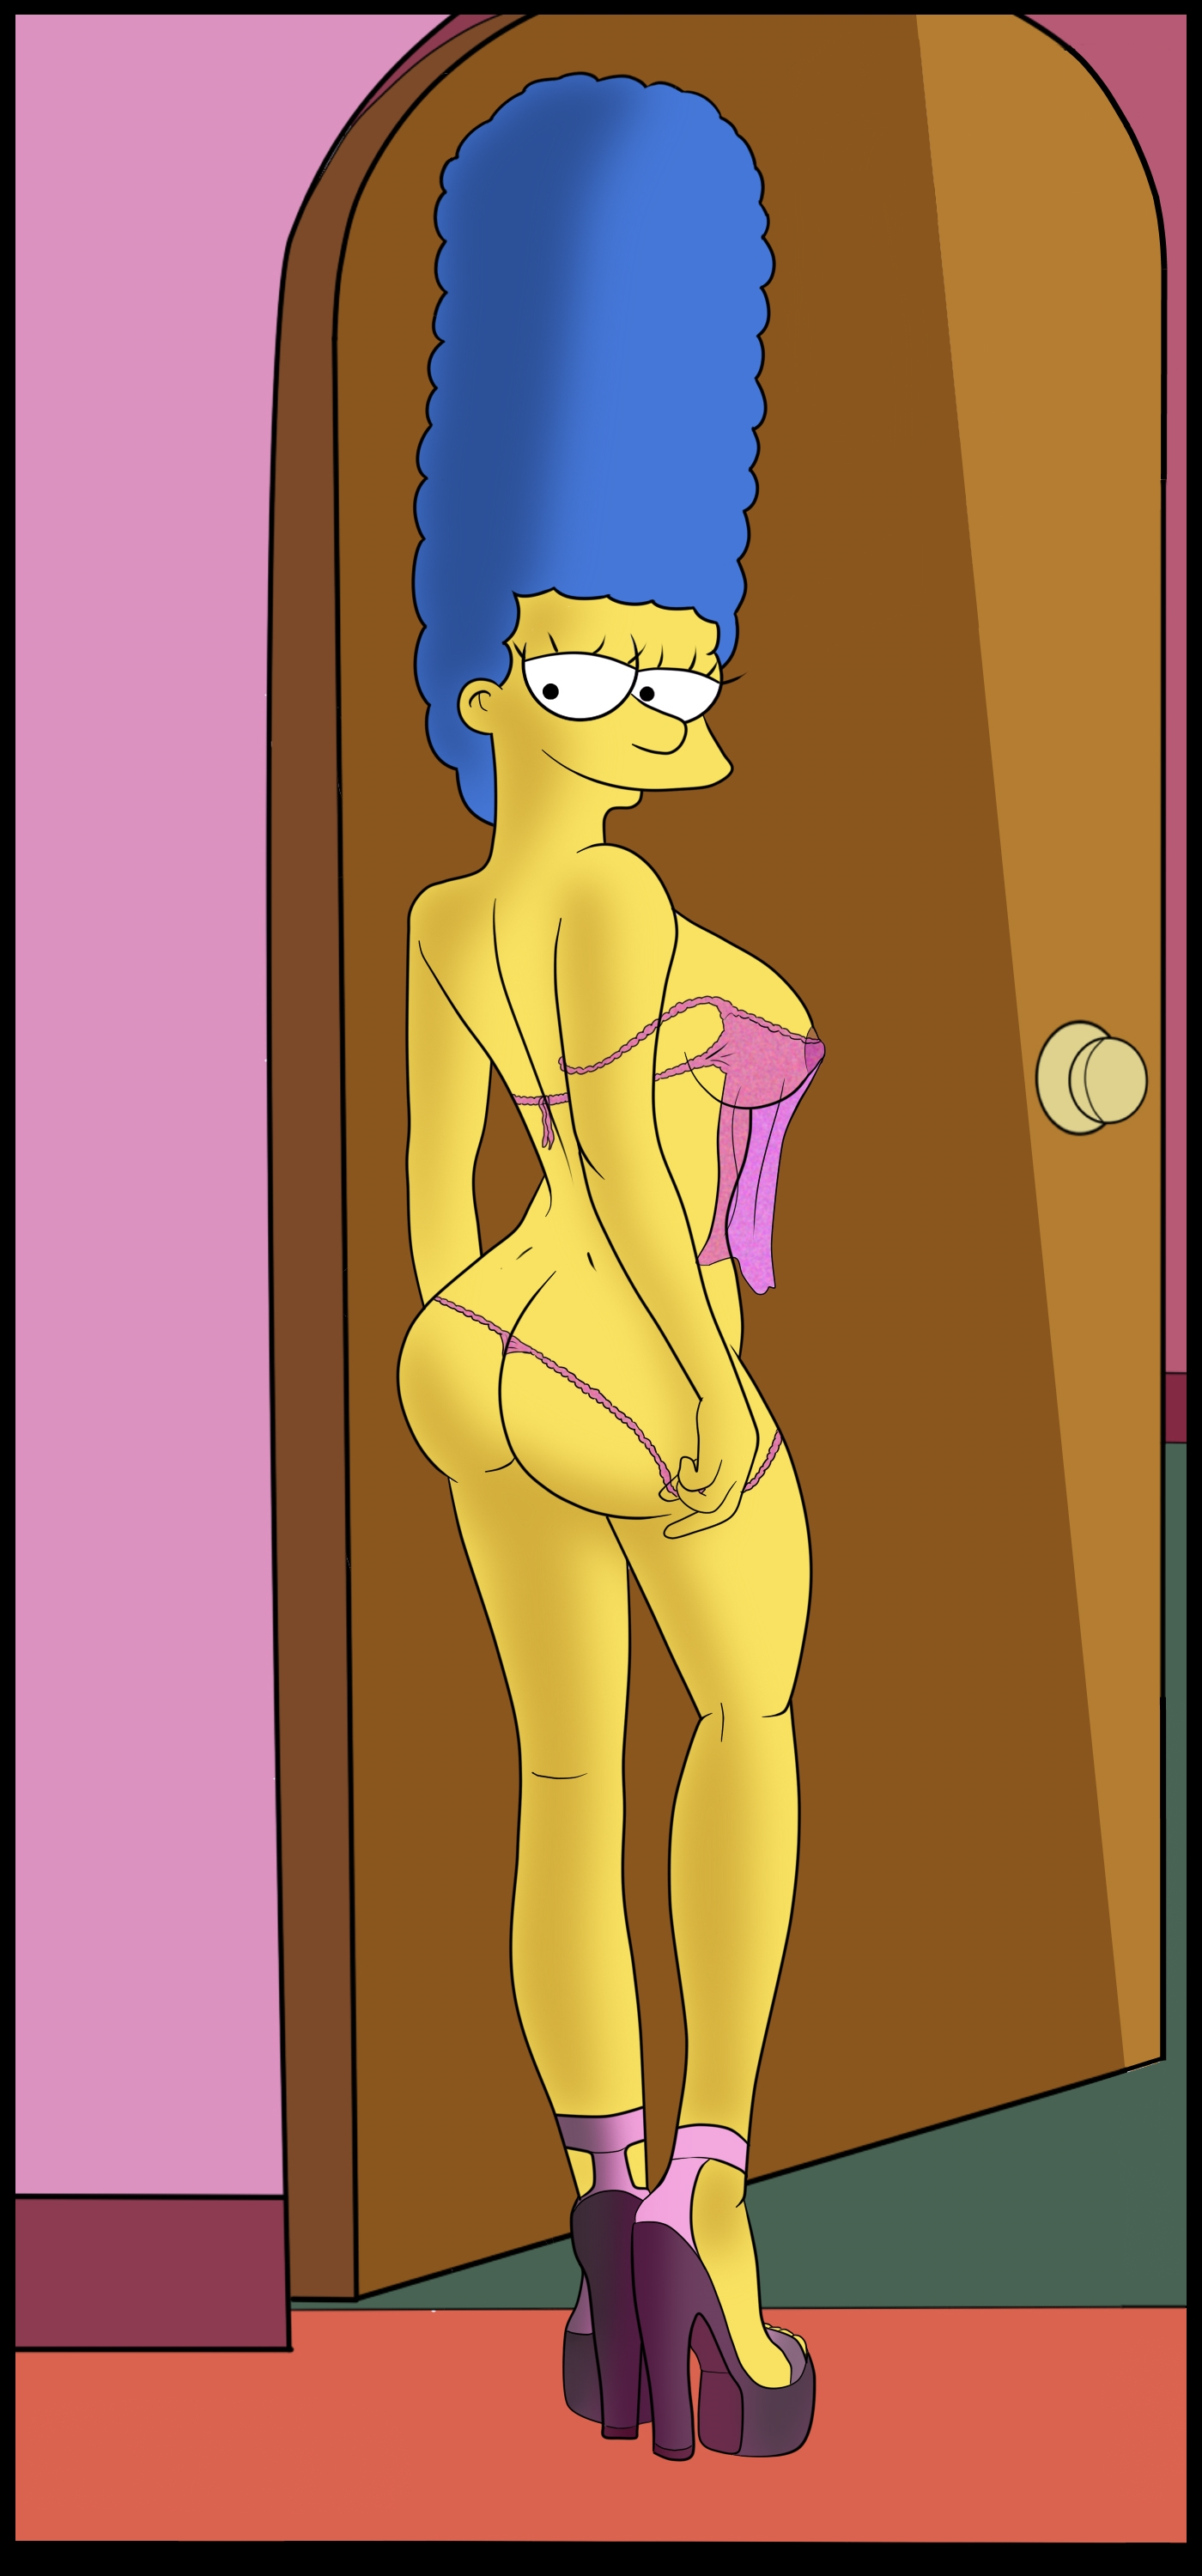 Marge Simpson likes her time seducing a banger in front of a bedroom ...